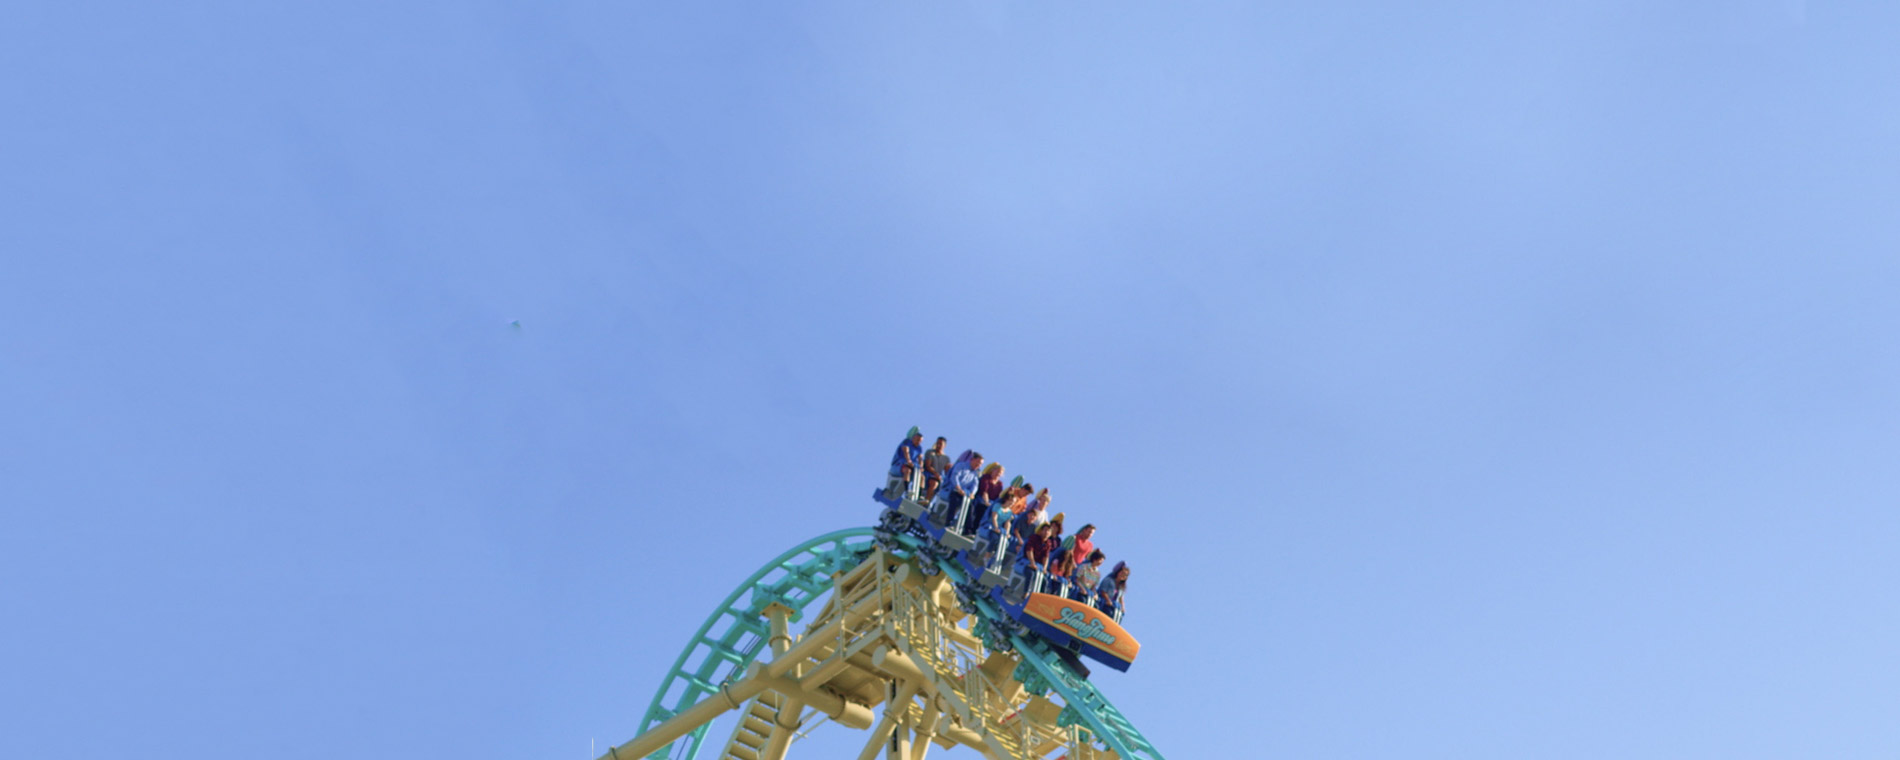 HangTime Steepest Drop Roller Coaster California